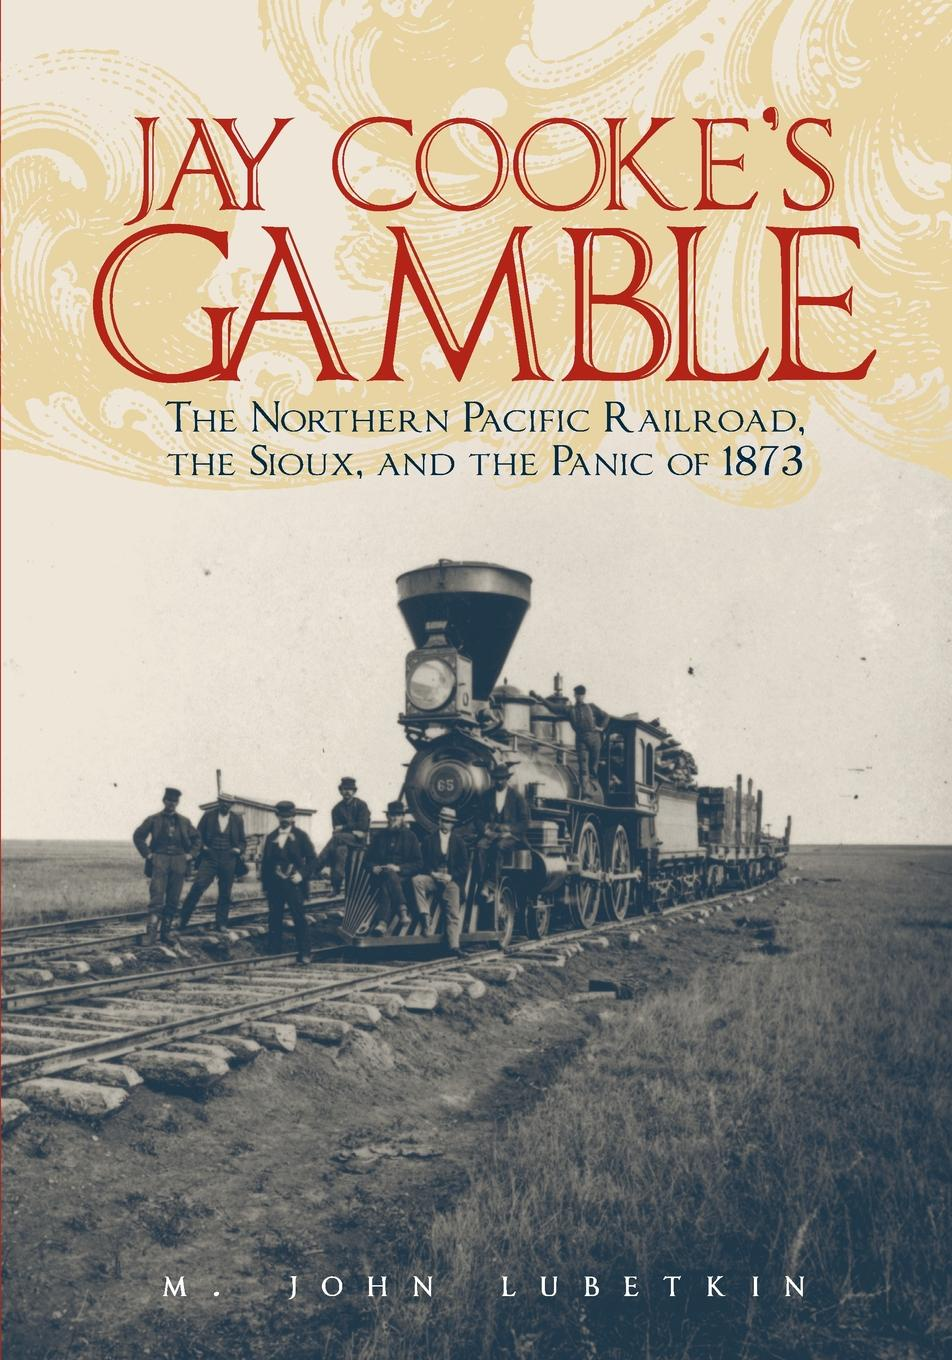 M. John Lubetkin Jay Cooke's Gamble. The Northern Pacific Railroad, the Sioux, and the Panic of 1873 john gamble a study on pascal three lectures by john gamble